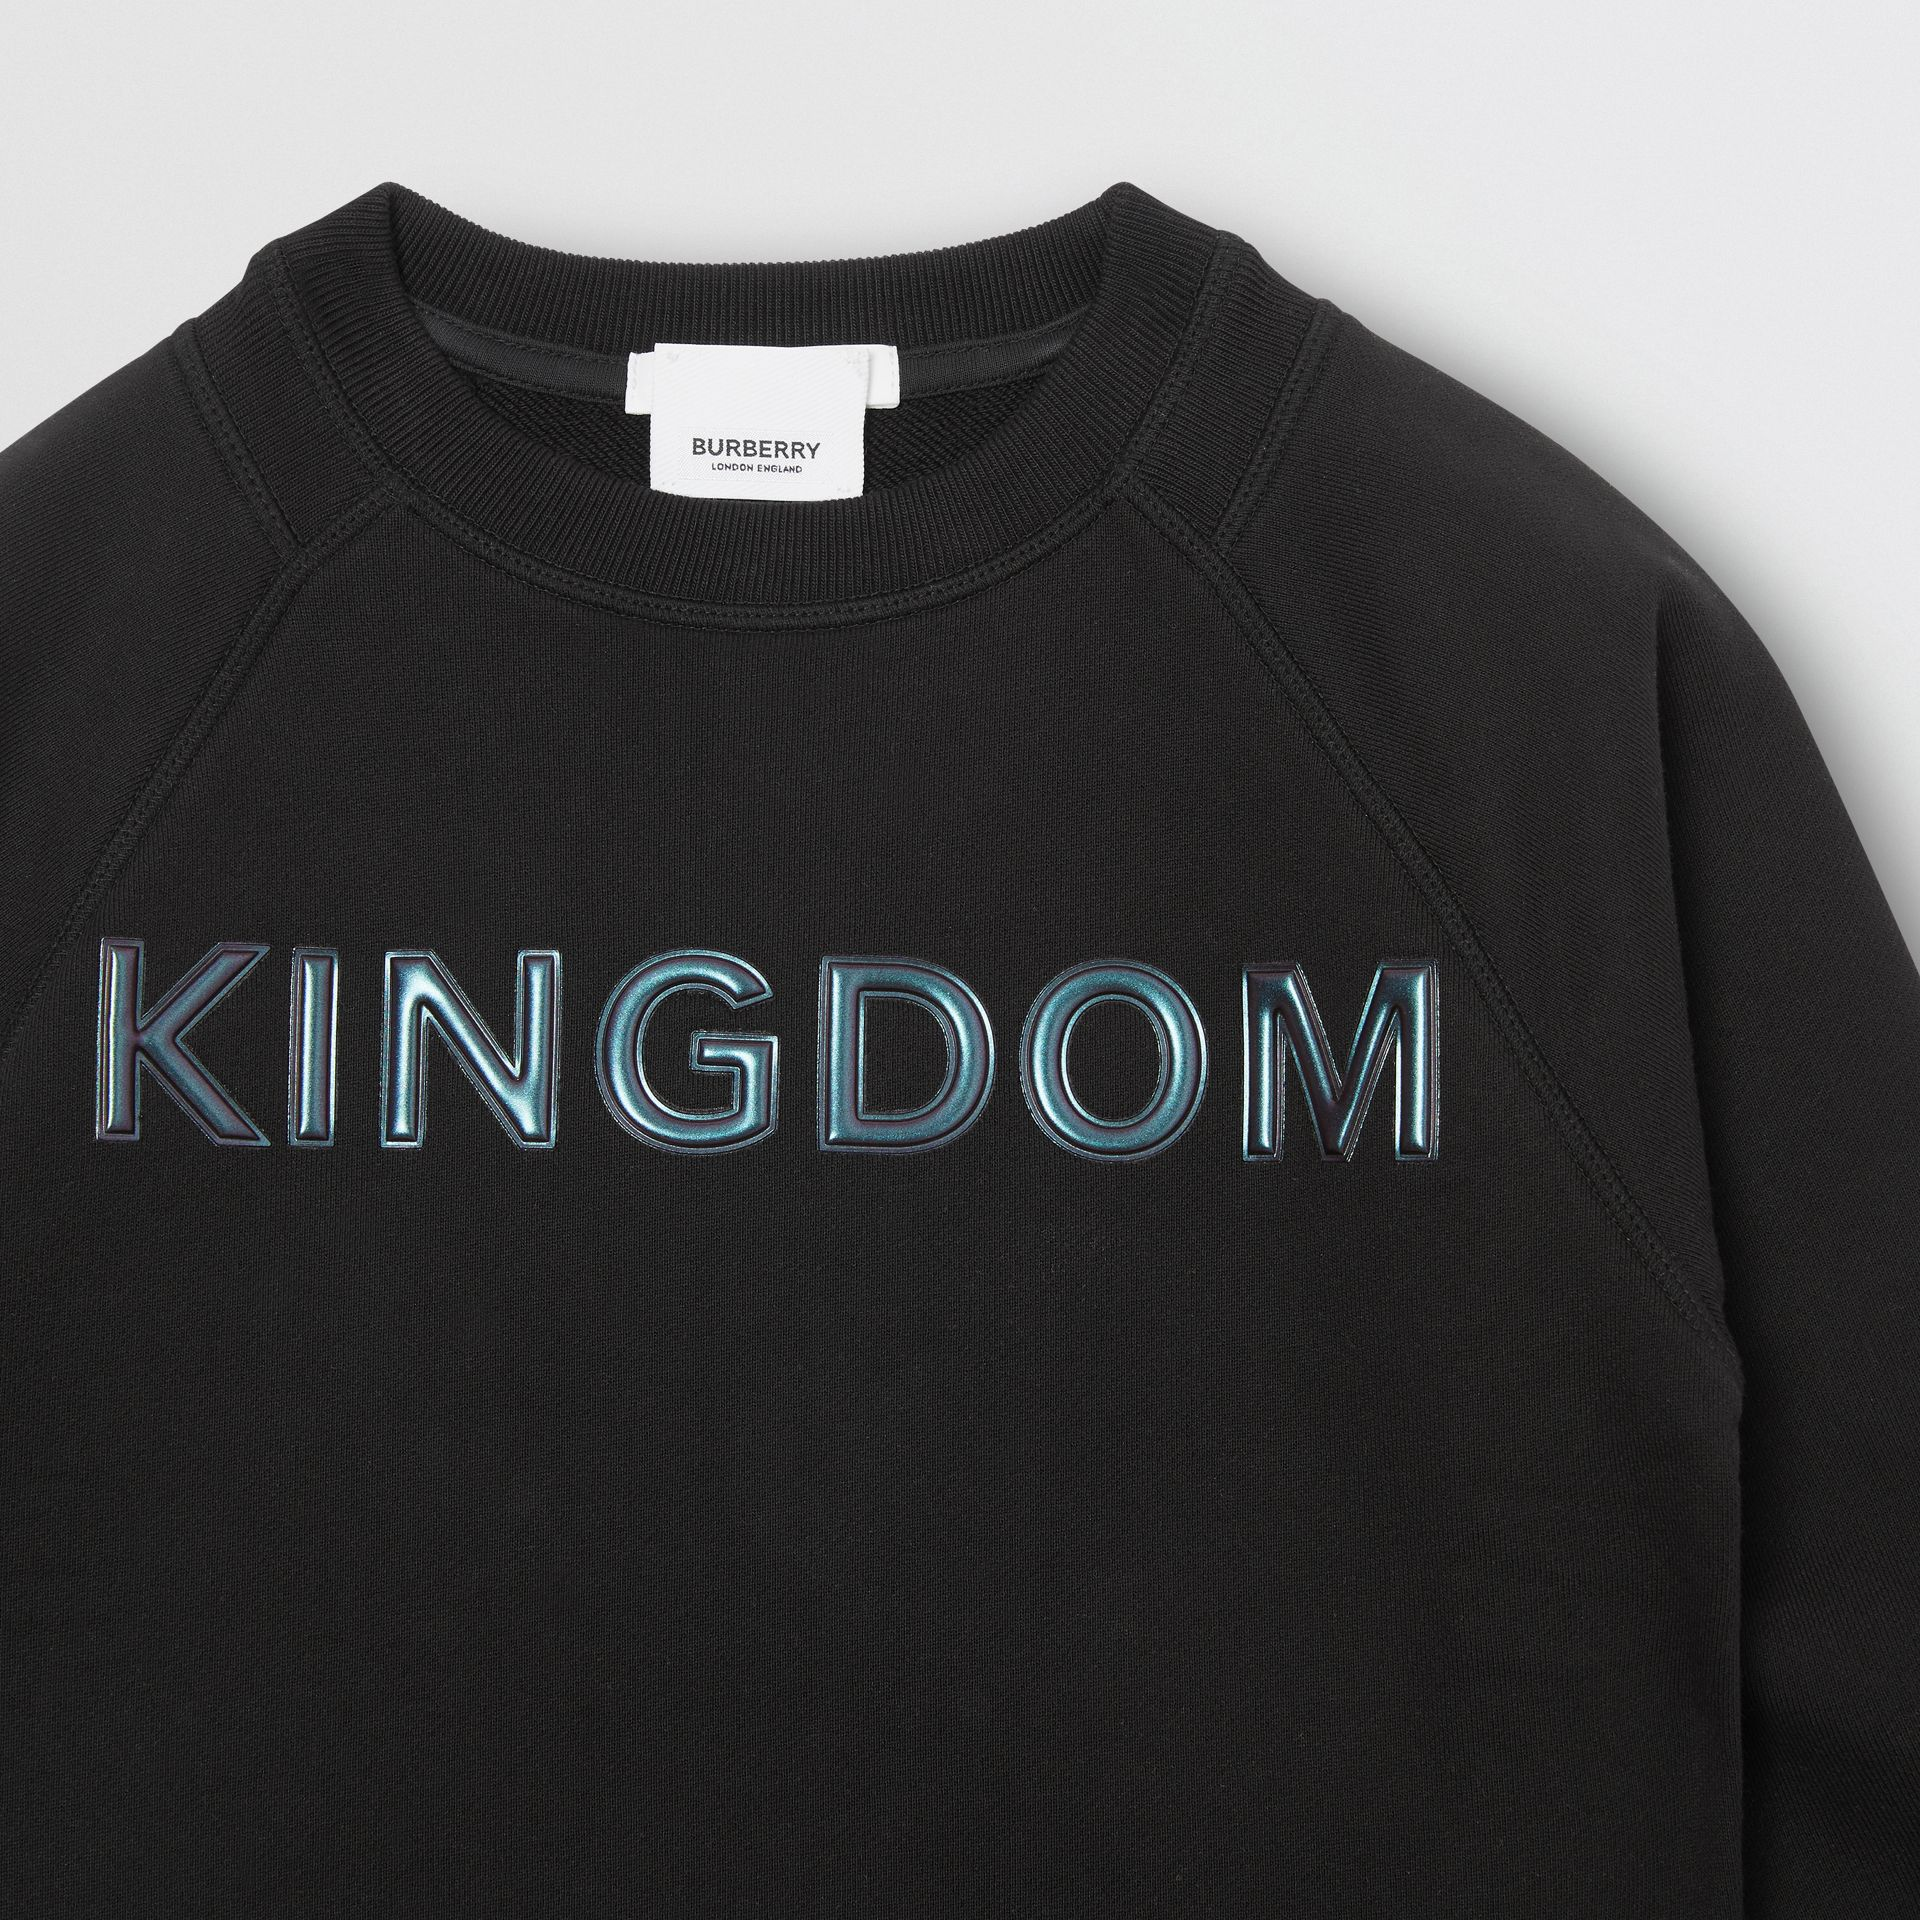 Kingdom Print Cotton Sweatshirt in Black | Burberry Australia - gallery image 4